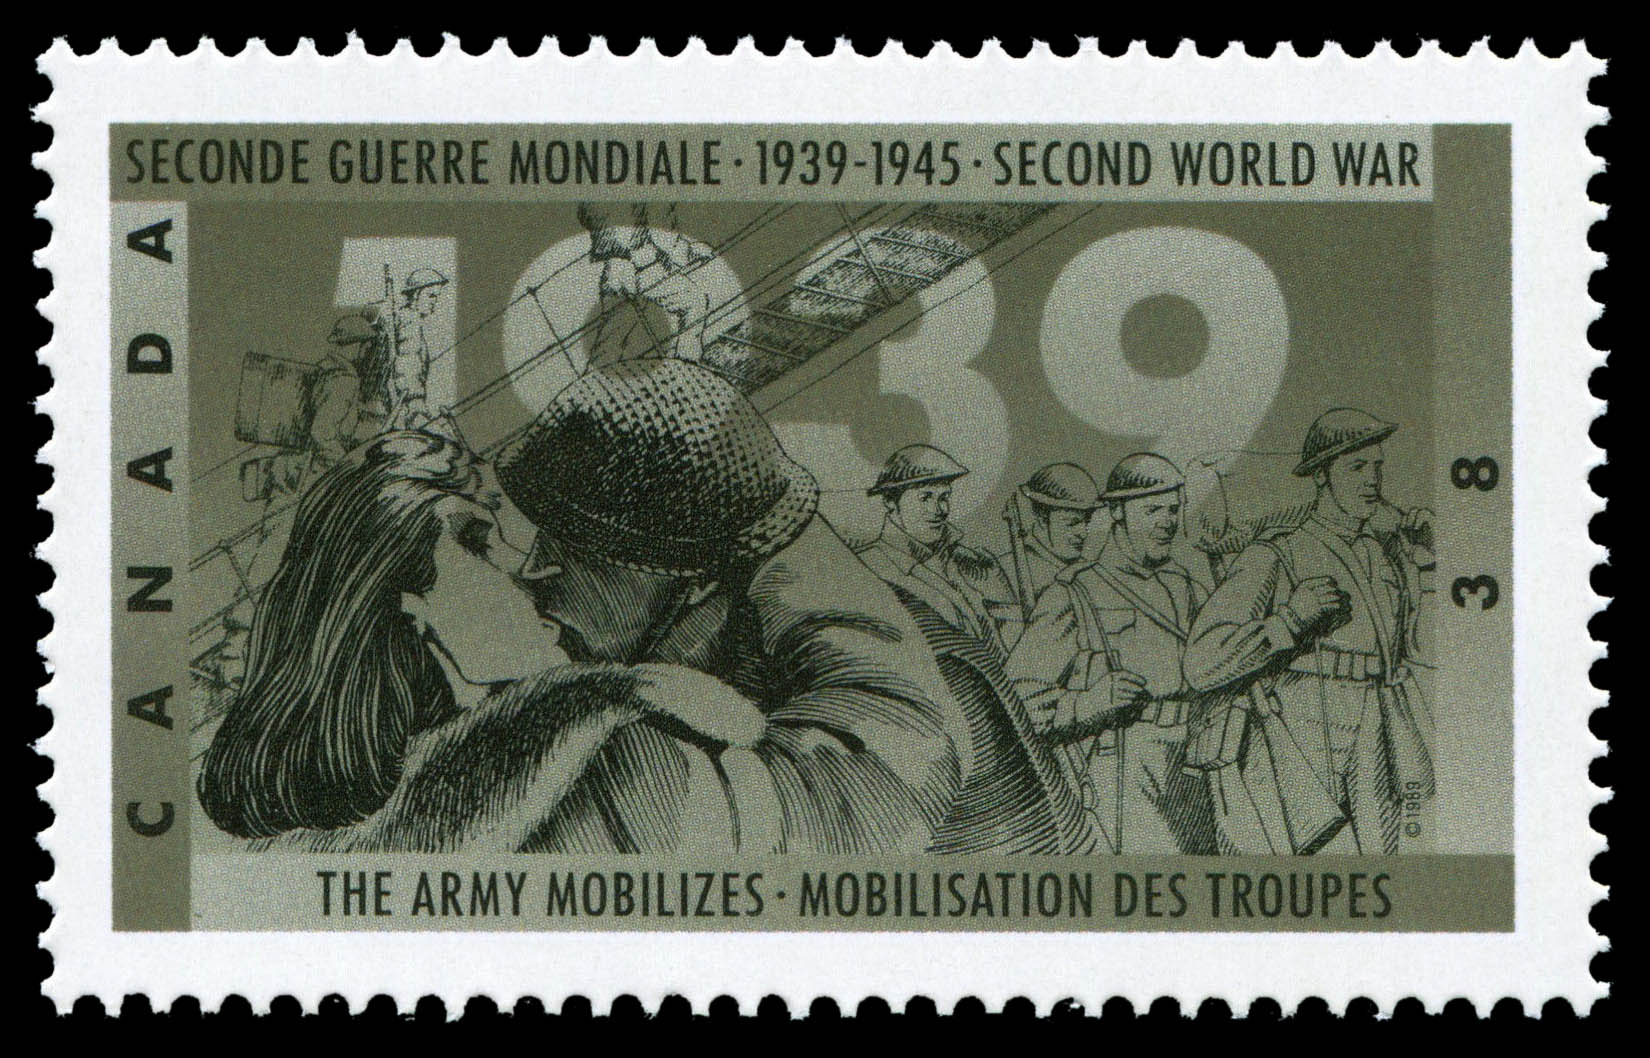 The Army mobilizes Canada Postage Stamp